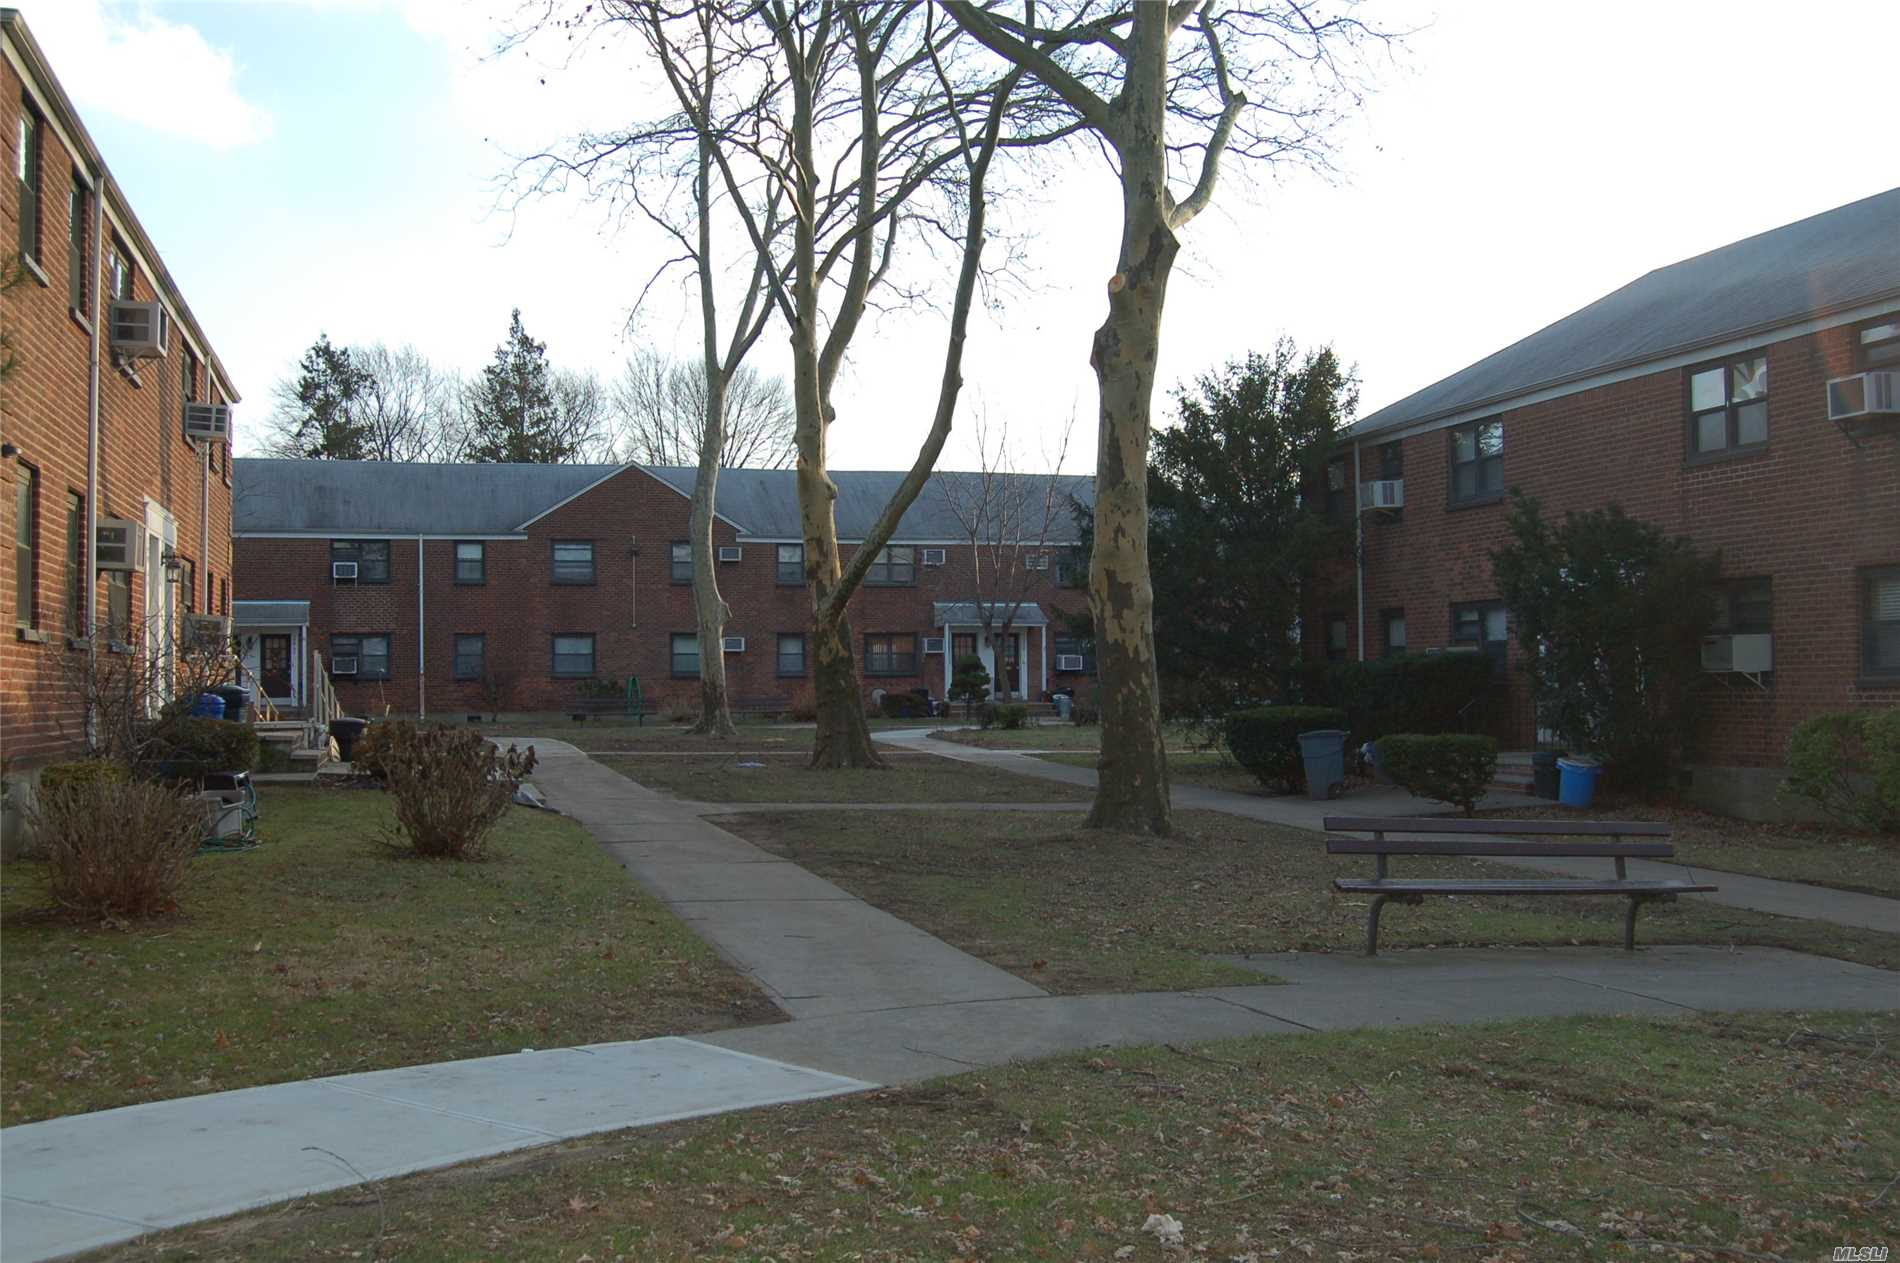 2 Br Lower Level Coop Located In Court Yard.